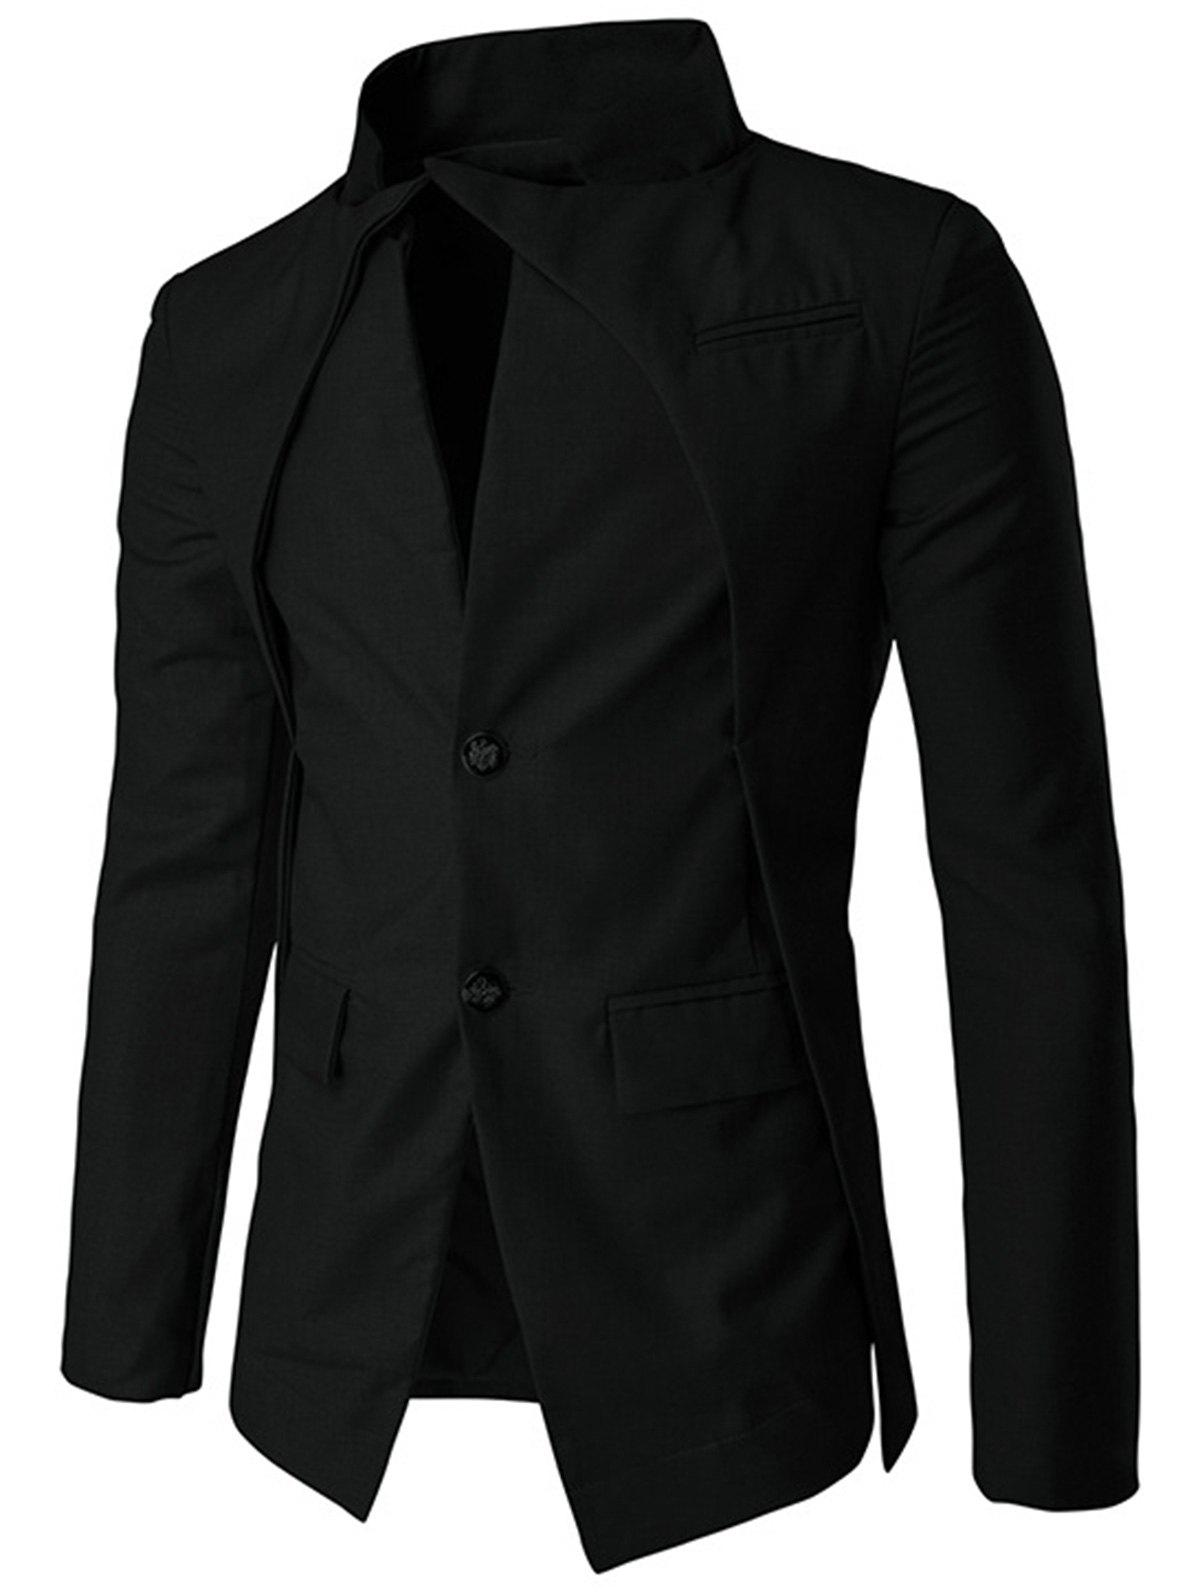 Irregular Design Buttons Blazer - BLACK XL